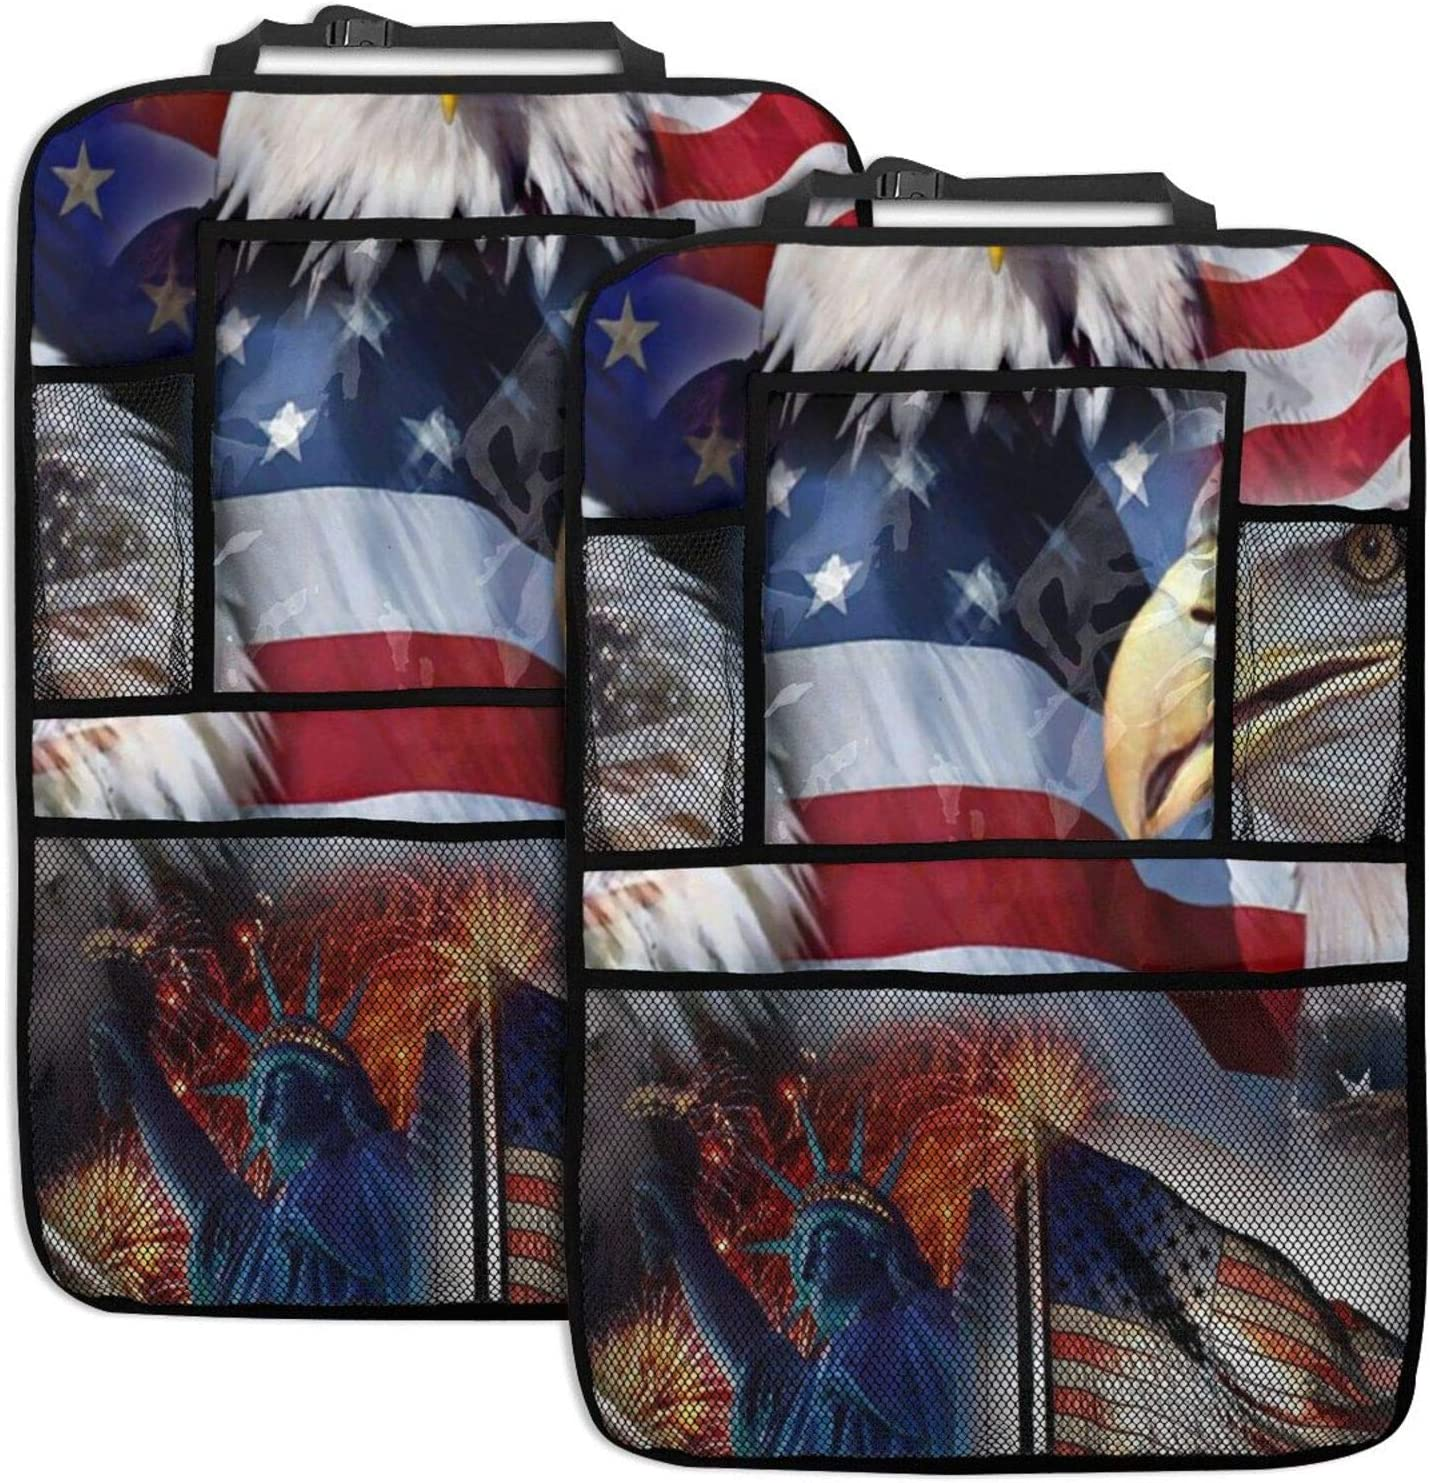 NELife Backseat Organizer 2 Pack - Oklahoma City Mall Flag Eagles Spasm price American Seat Car